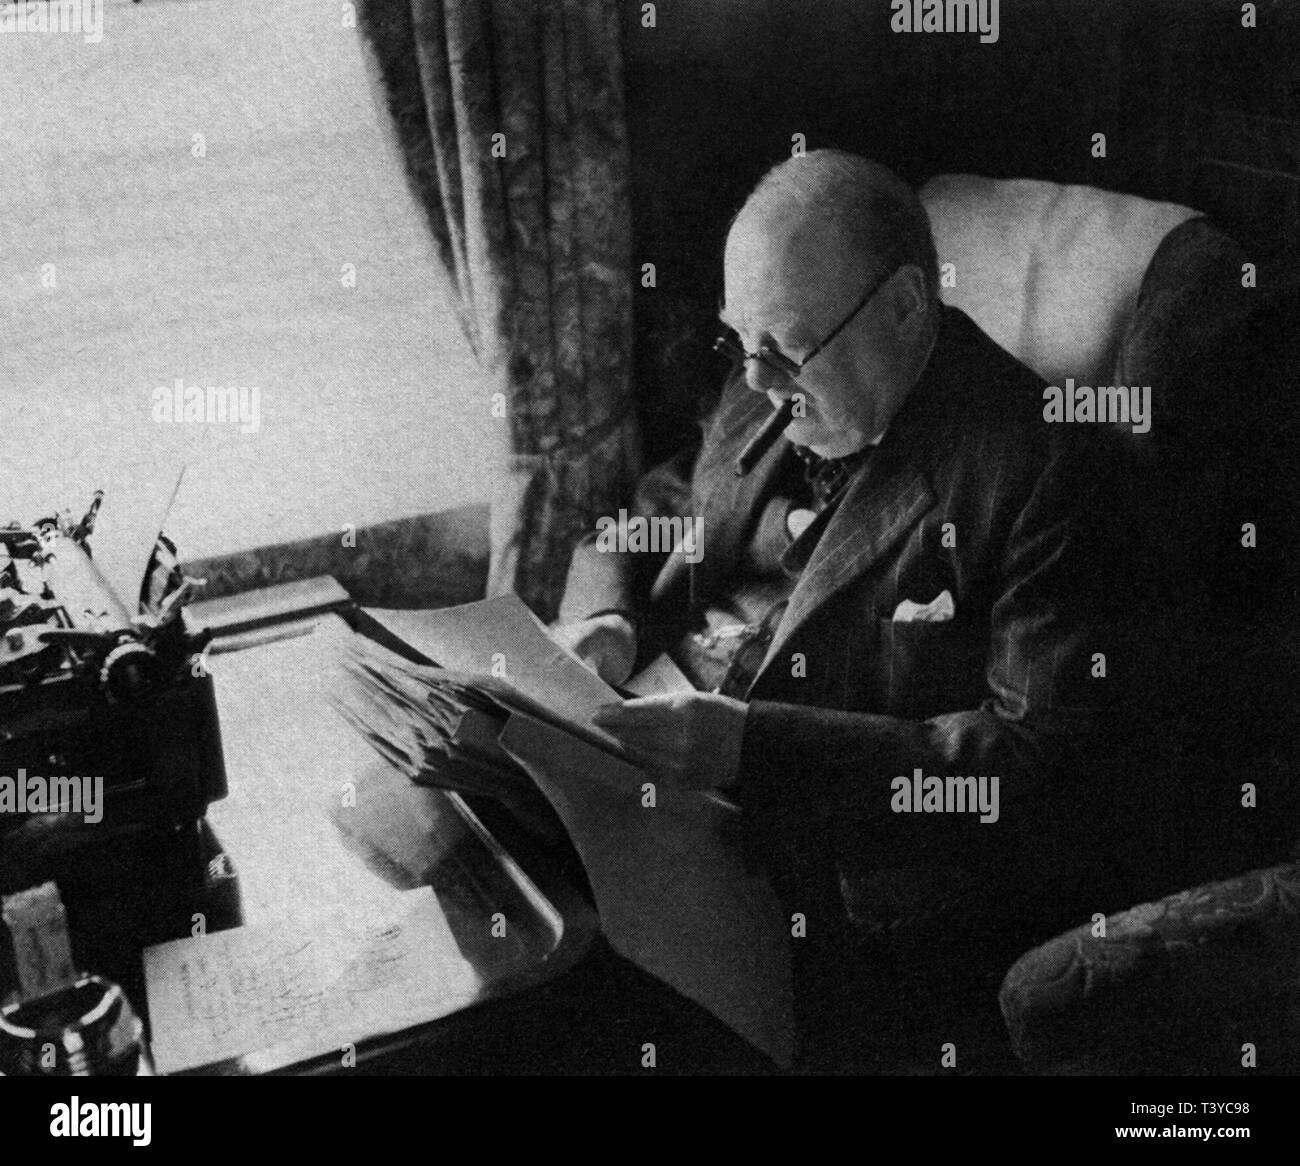 Winston Churchill travelling by train in Canada, August 1943 - Stock Image